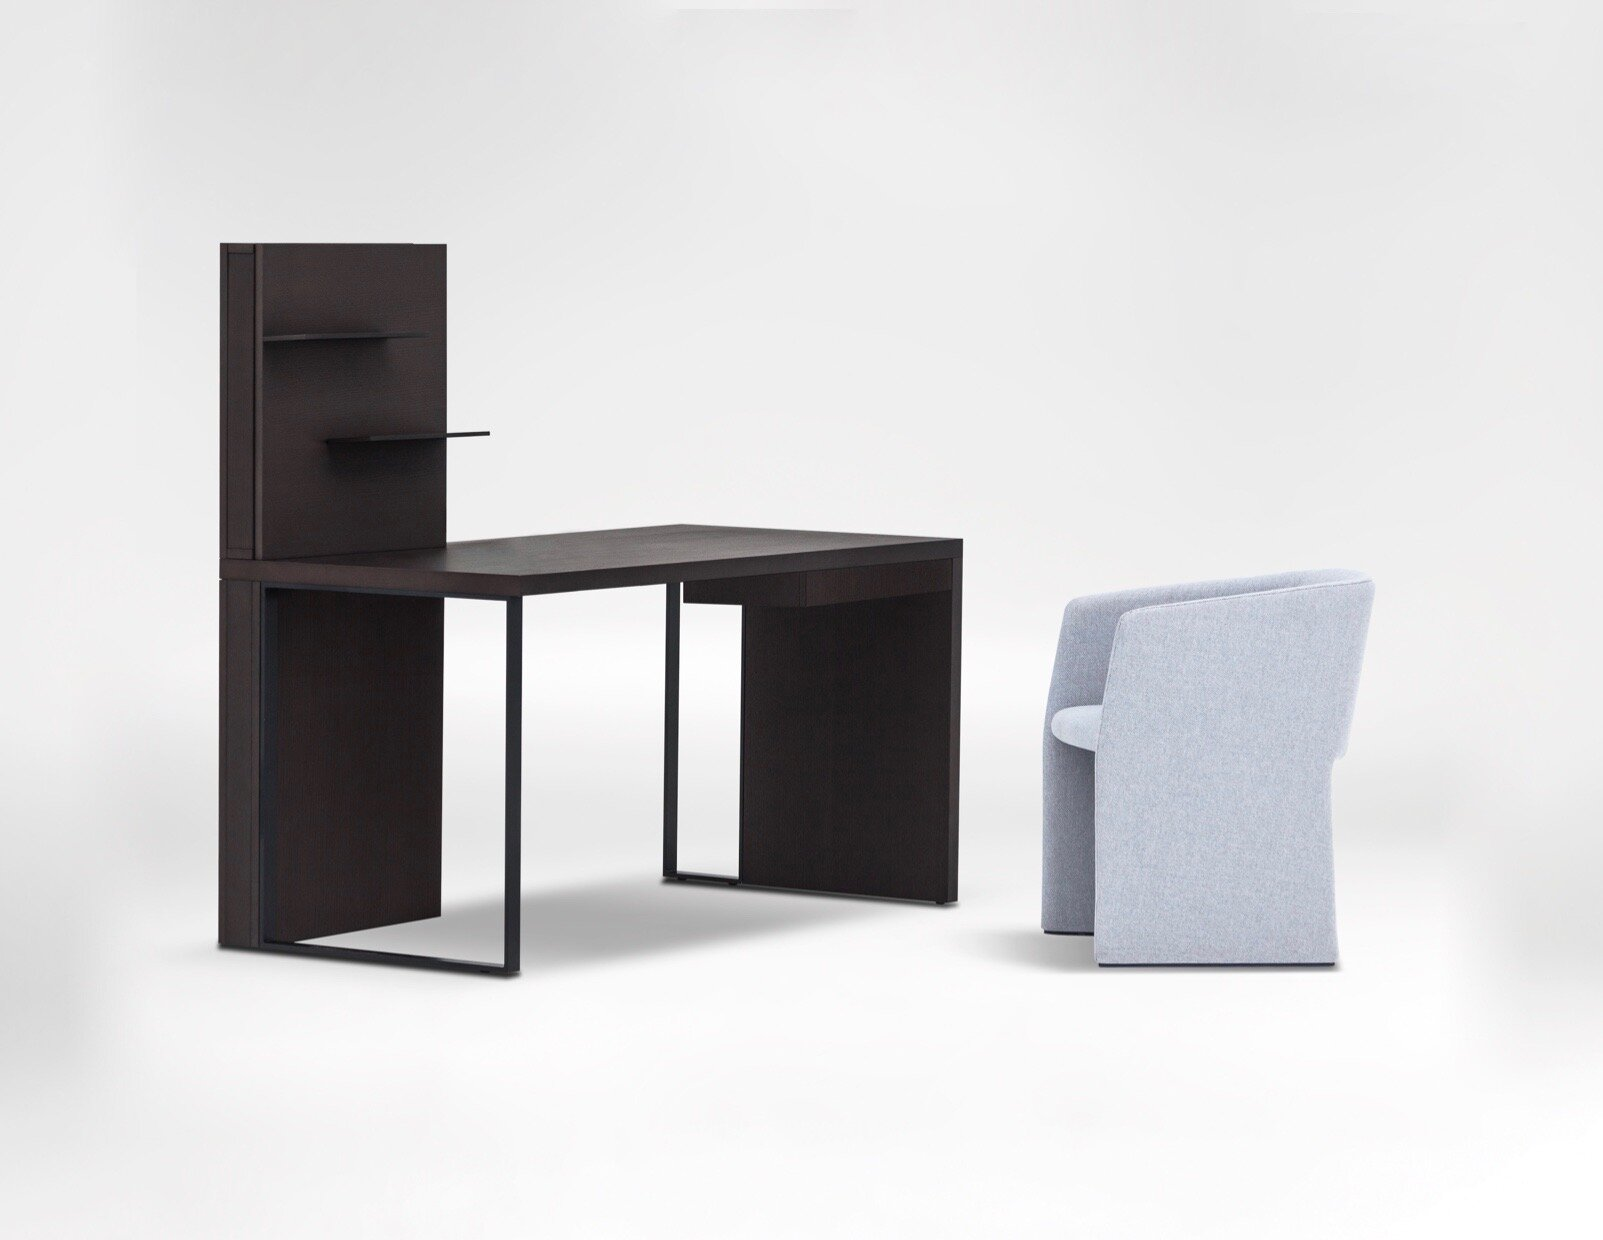 Time Desk - A clean shape built with straight lines highlights a 3D effect and modern industrial aesthetics.